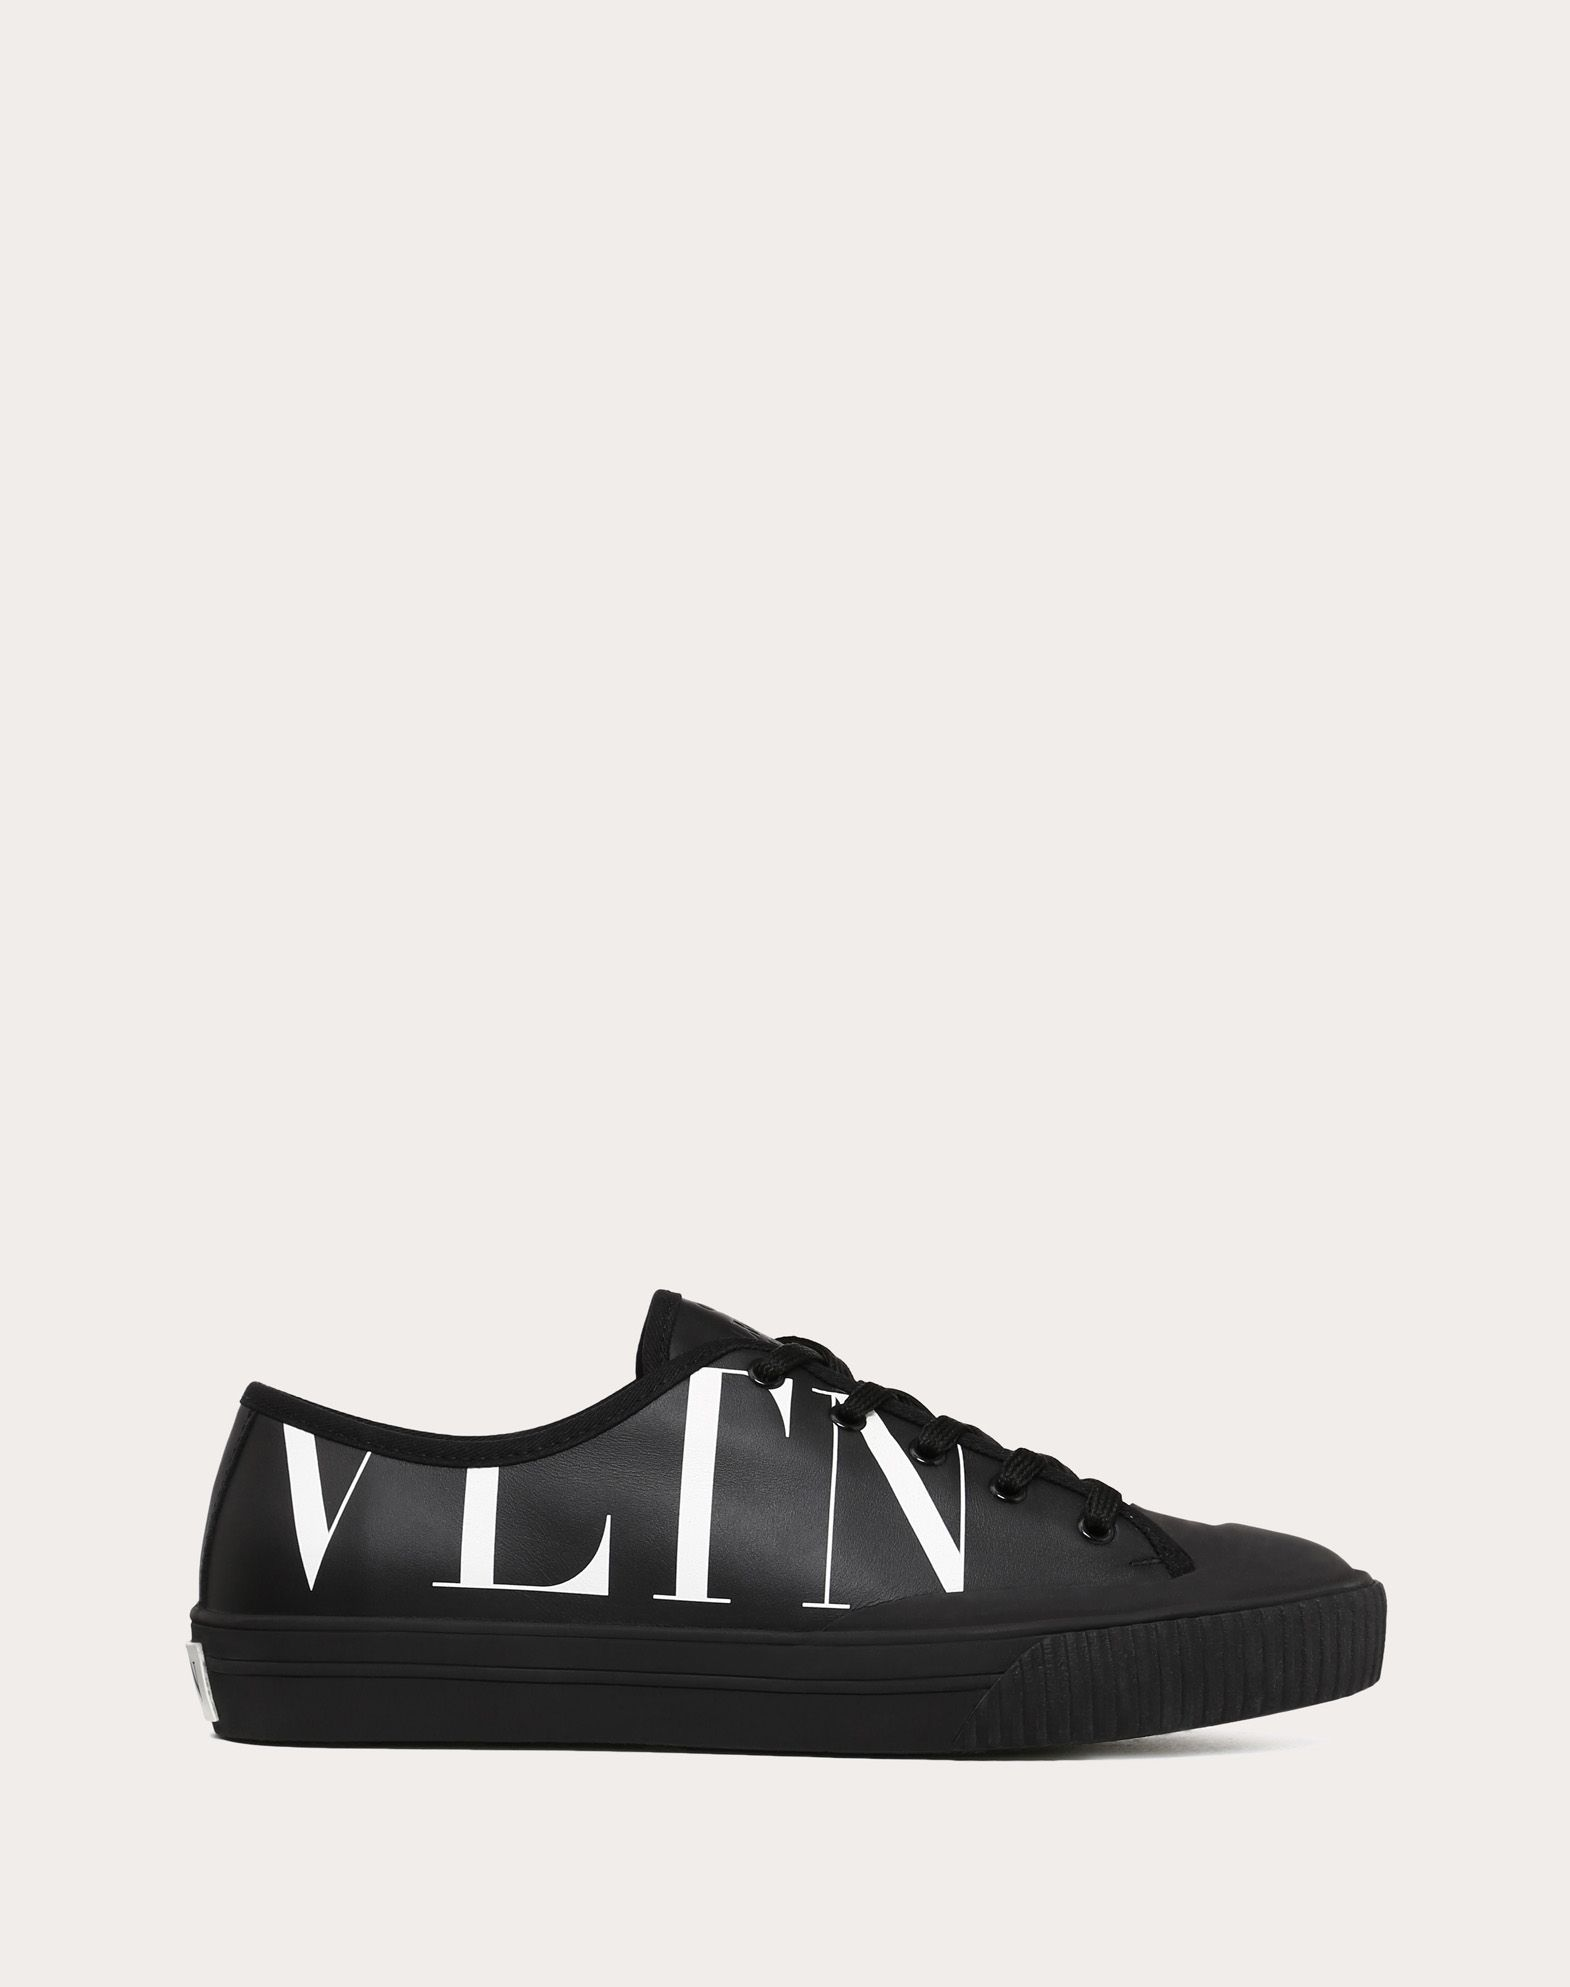 ValentinoHigh-top Sneaker With Vltn Logo CYpQUax6At